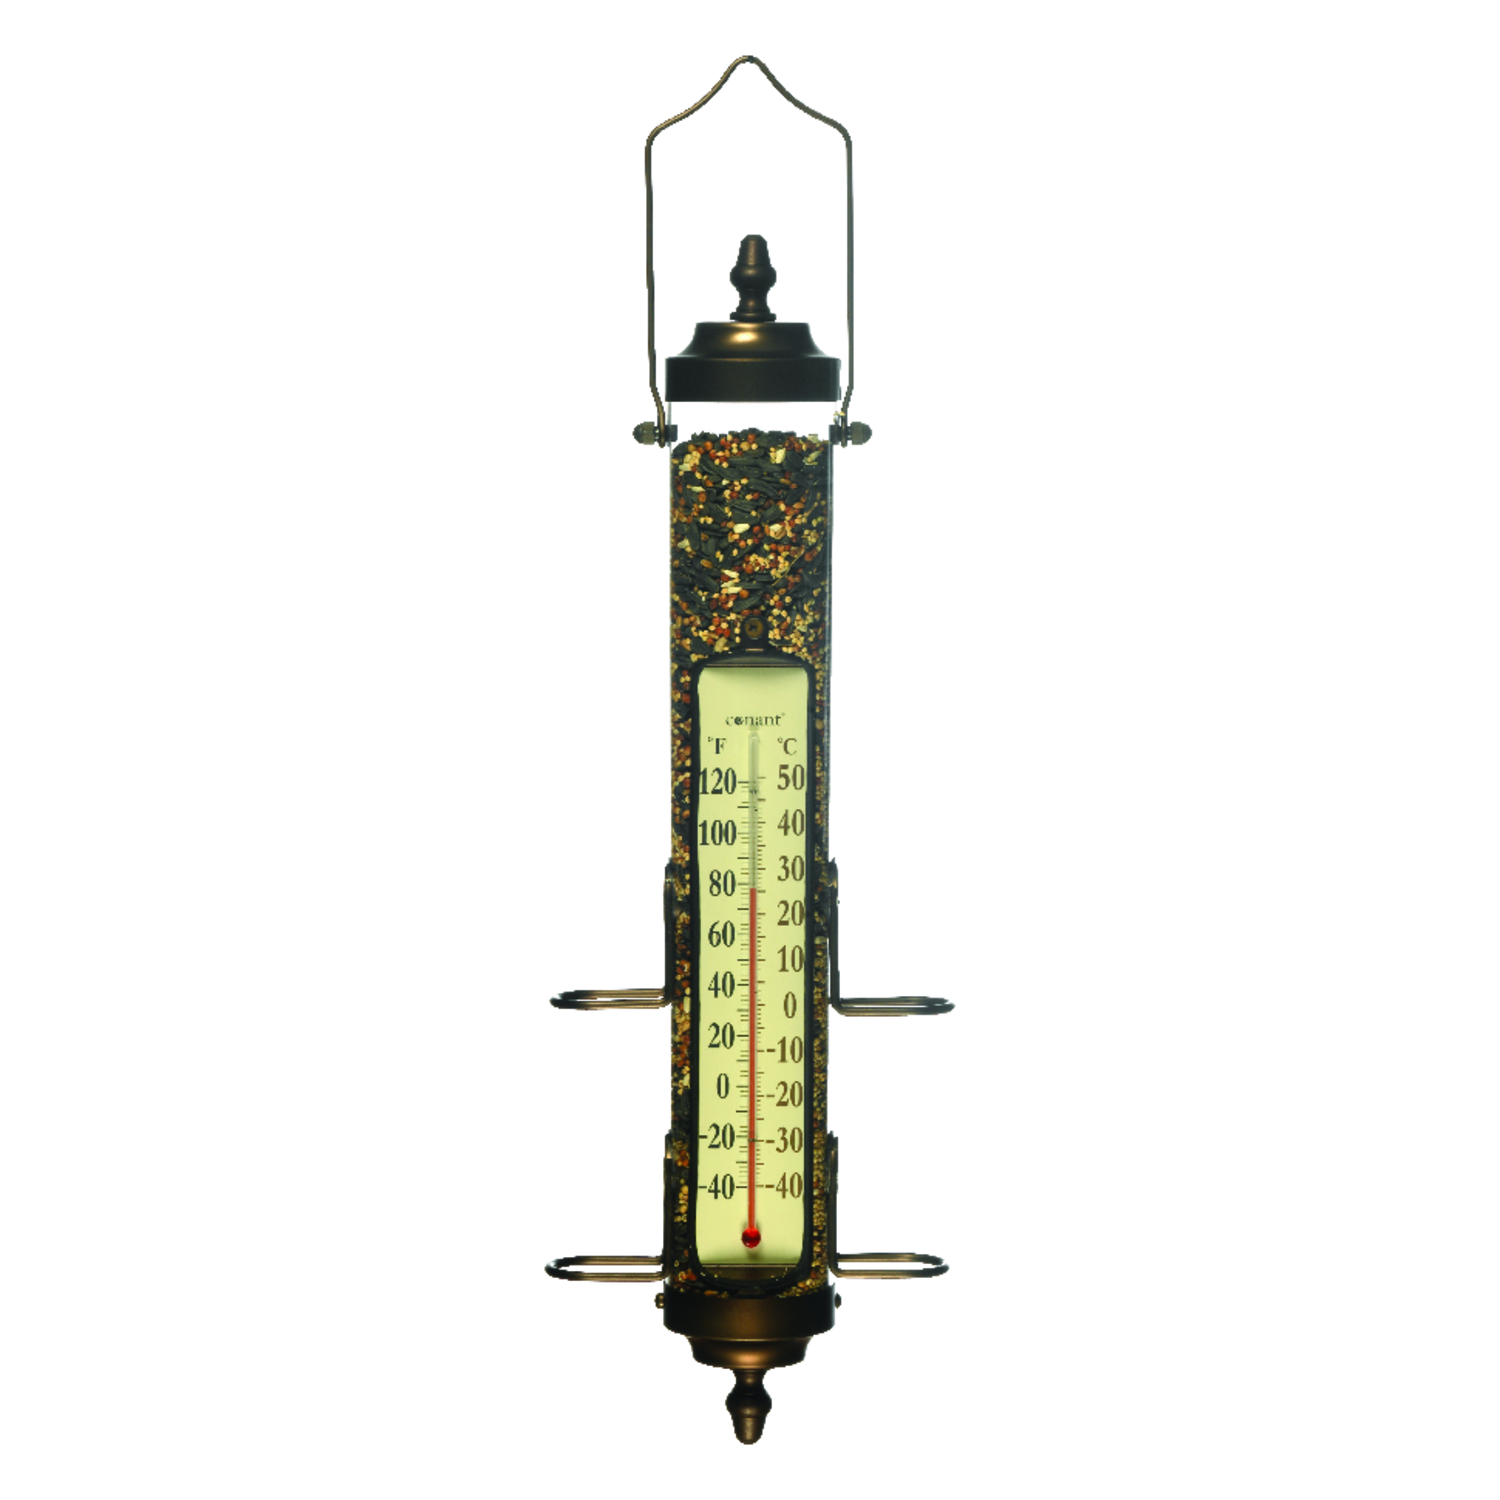 Conant  Grande View  Wild Bird  Tube  Combo Feeder and Thermometer  4 ports Polycarbonate